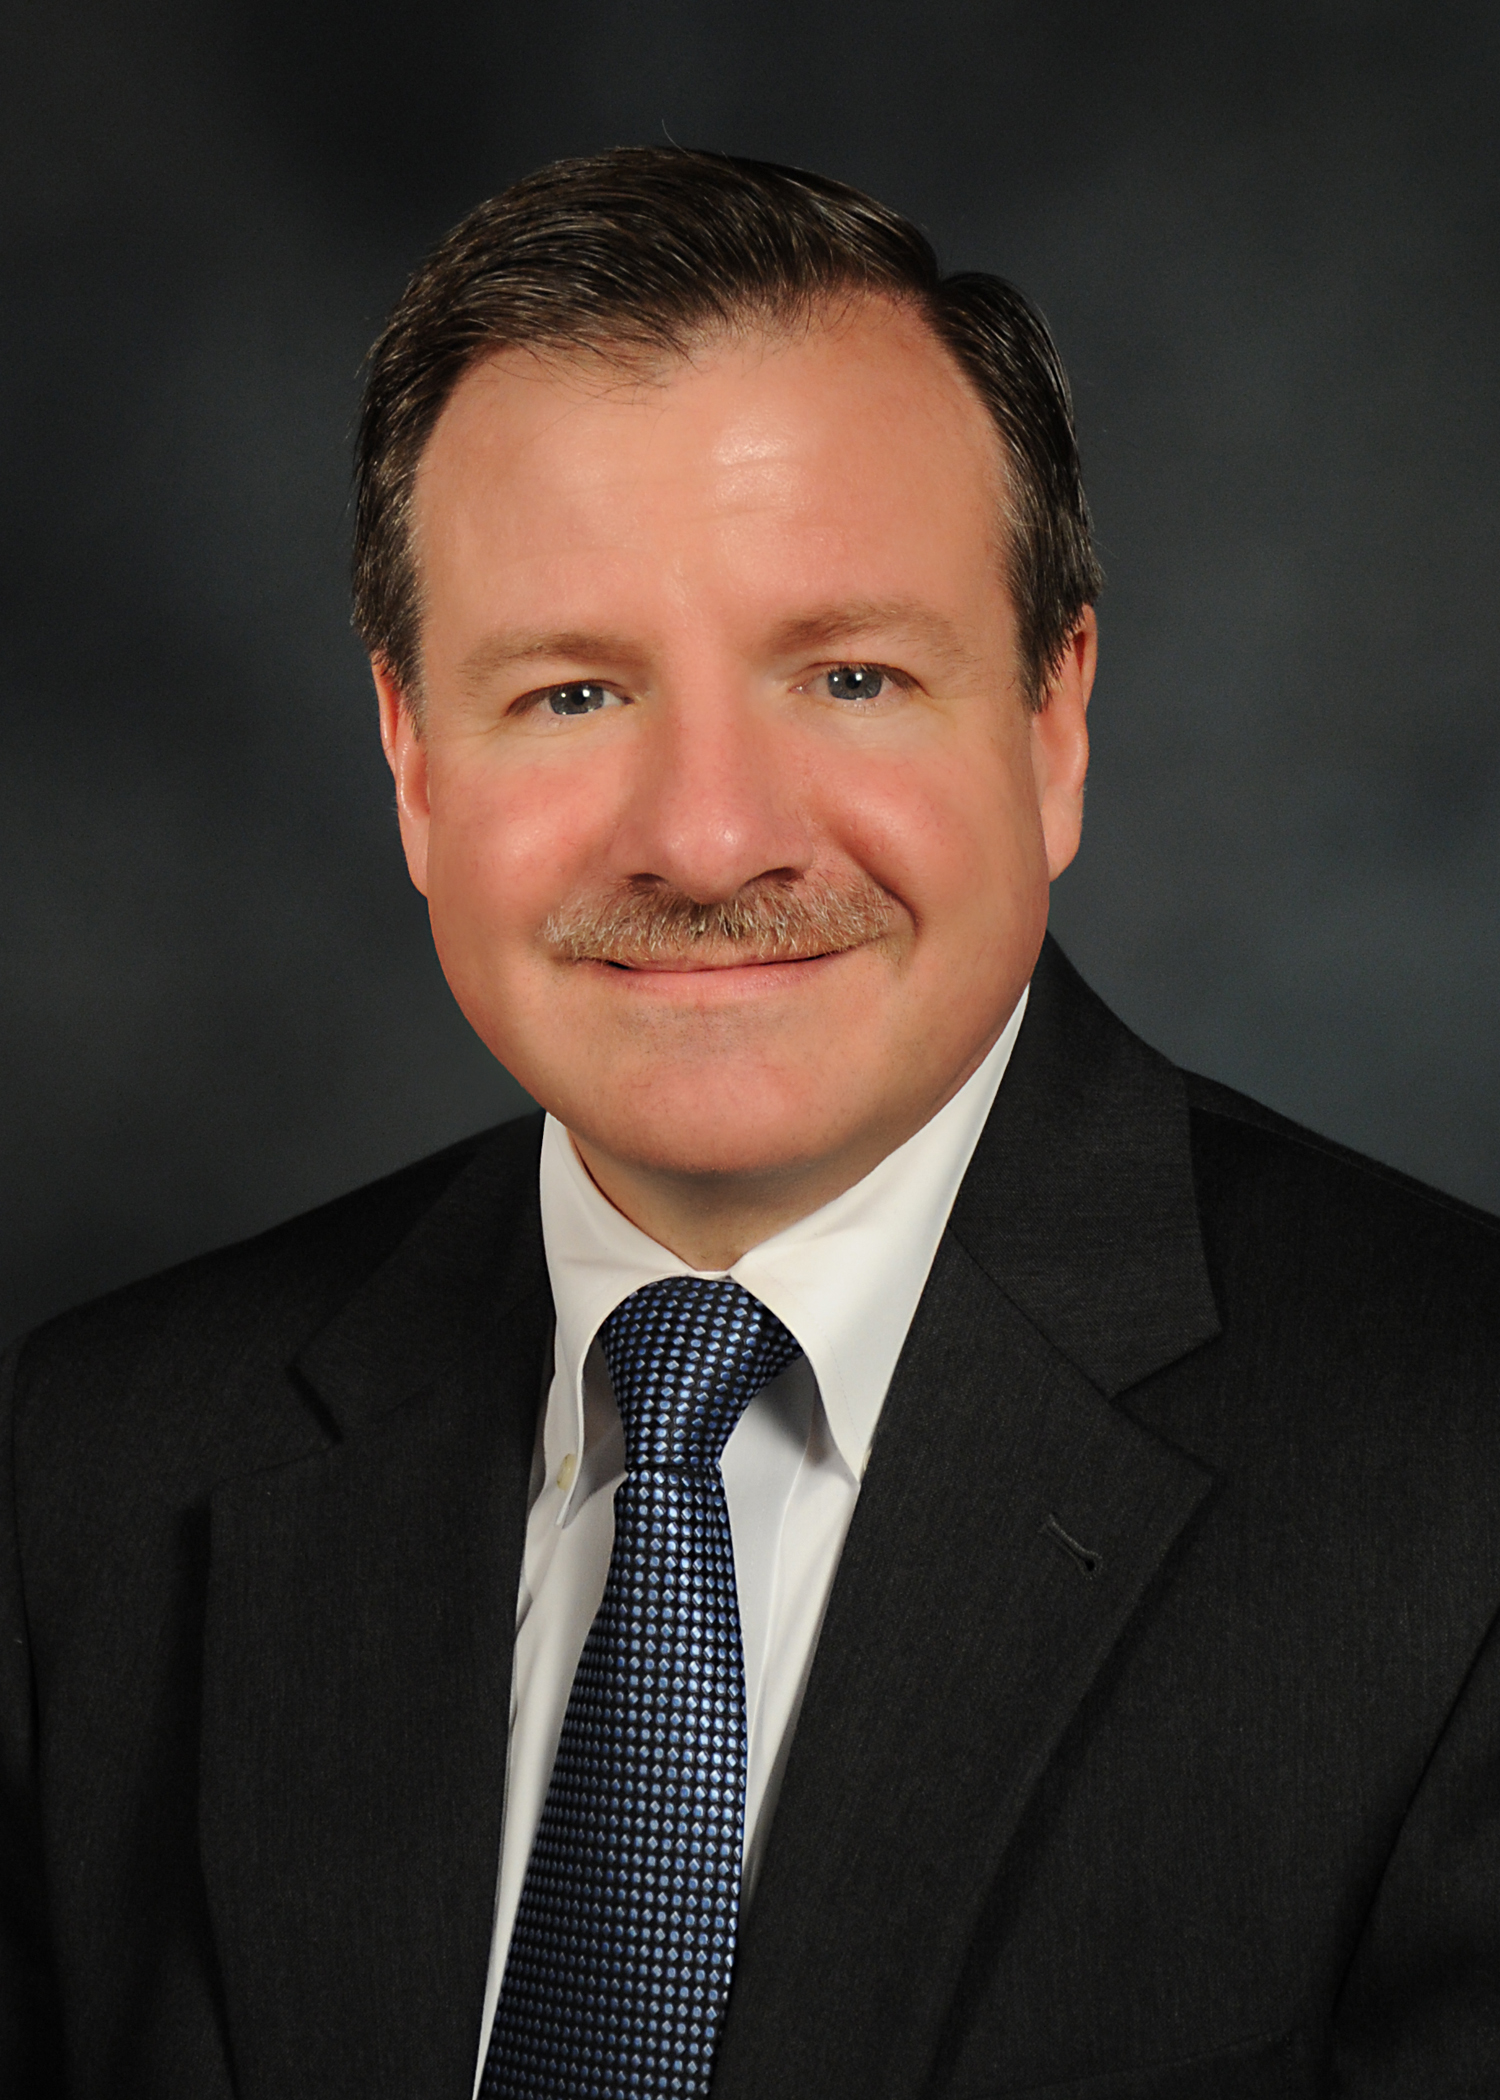 UofL pediatrician elected chair of national committee